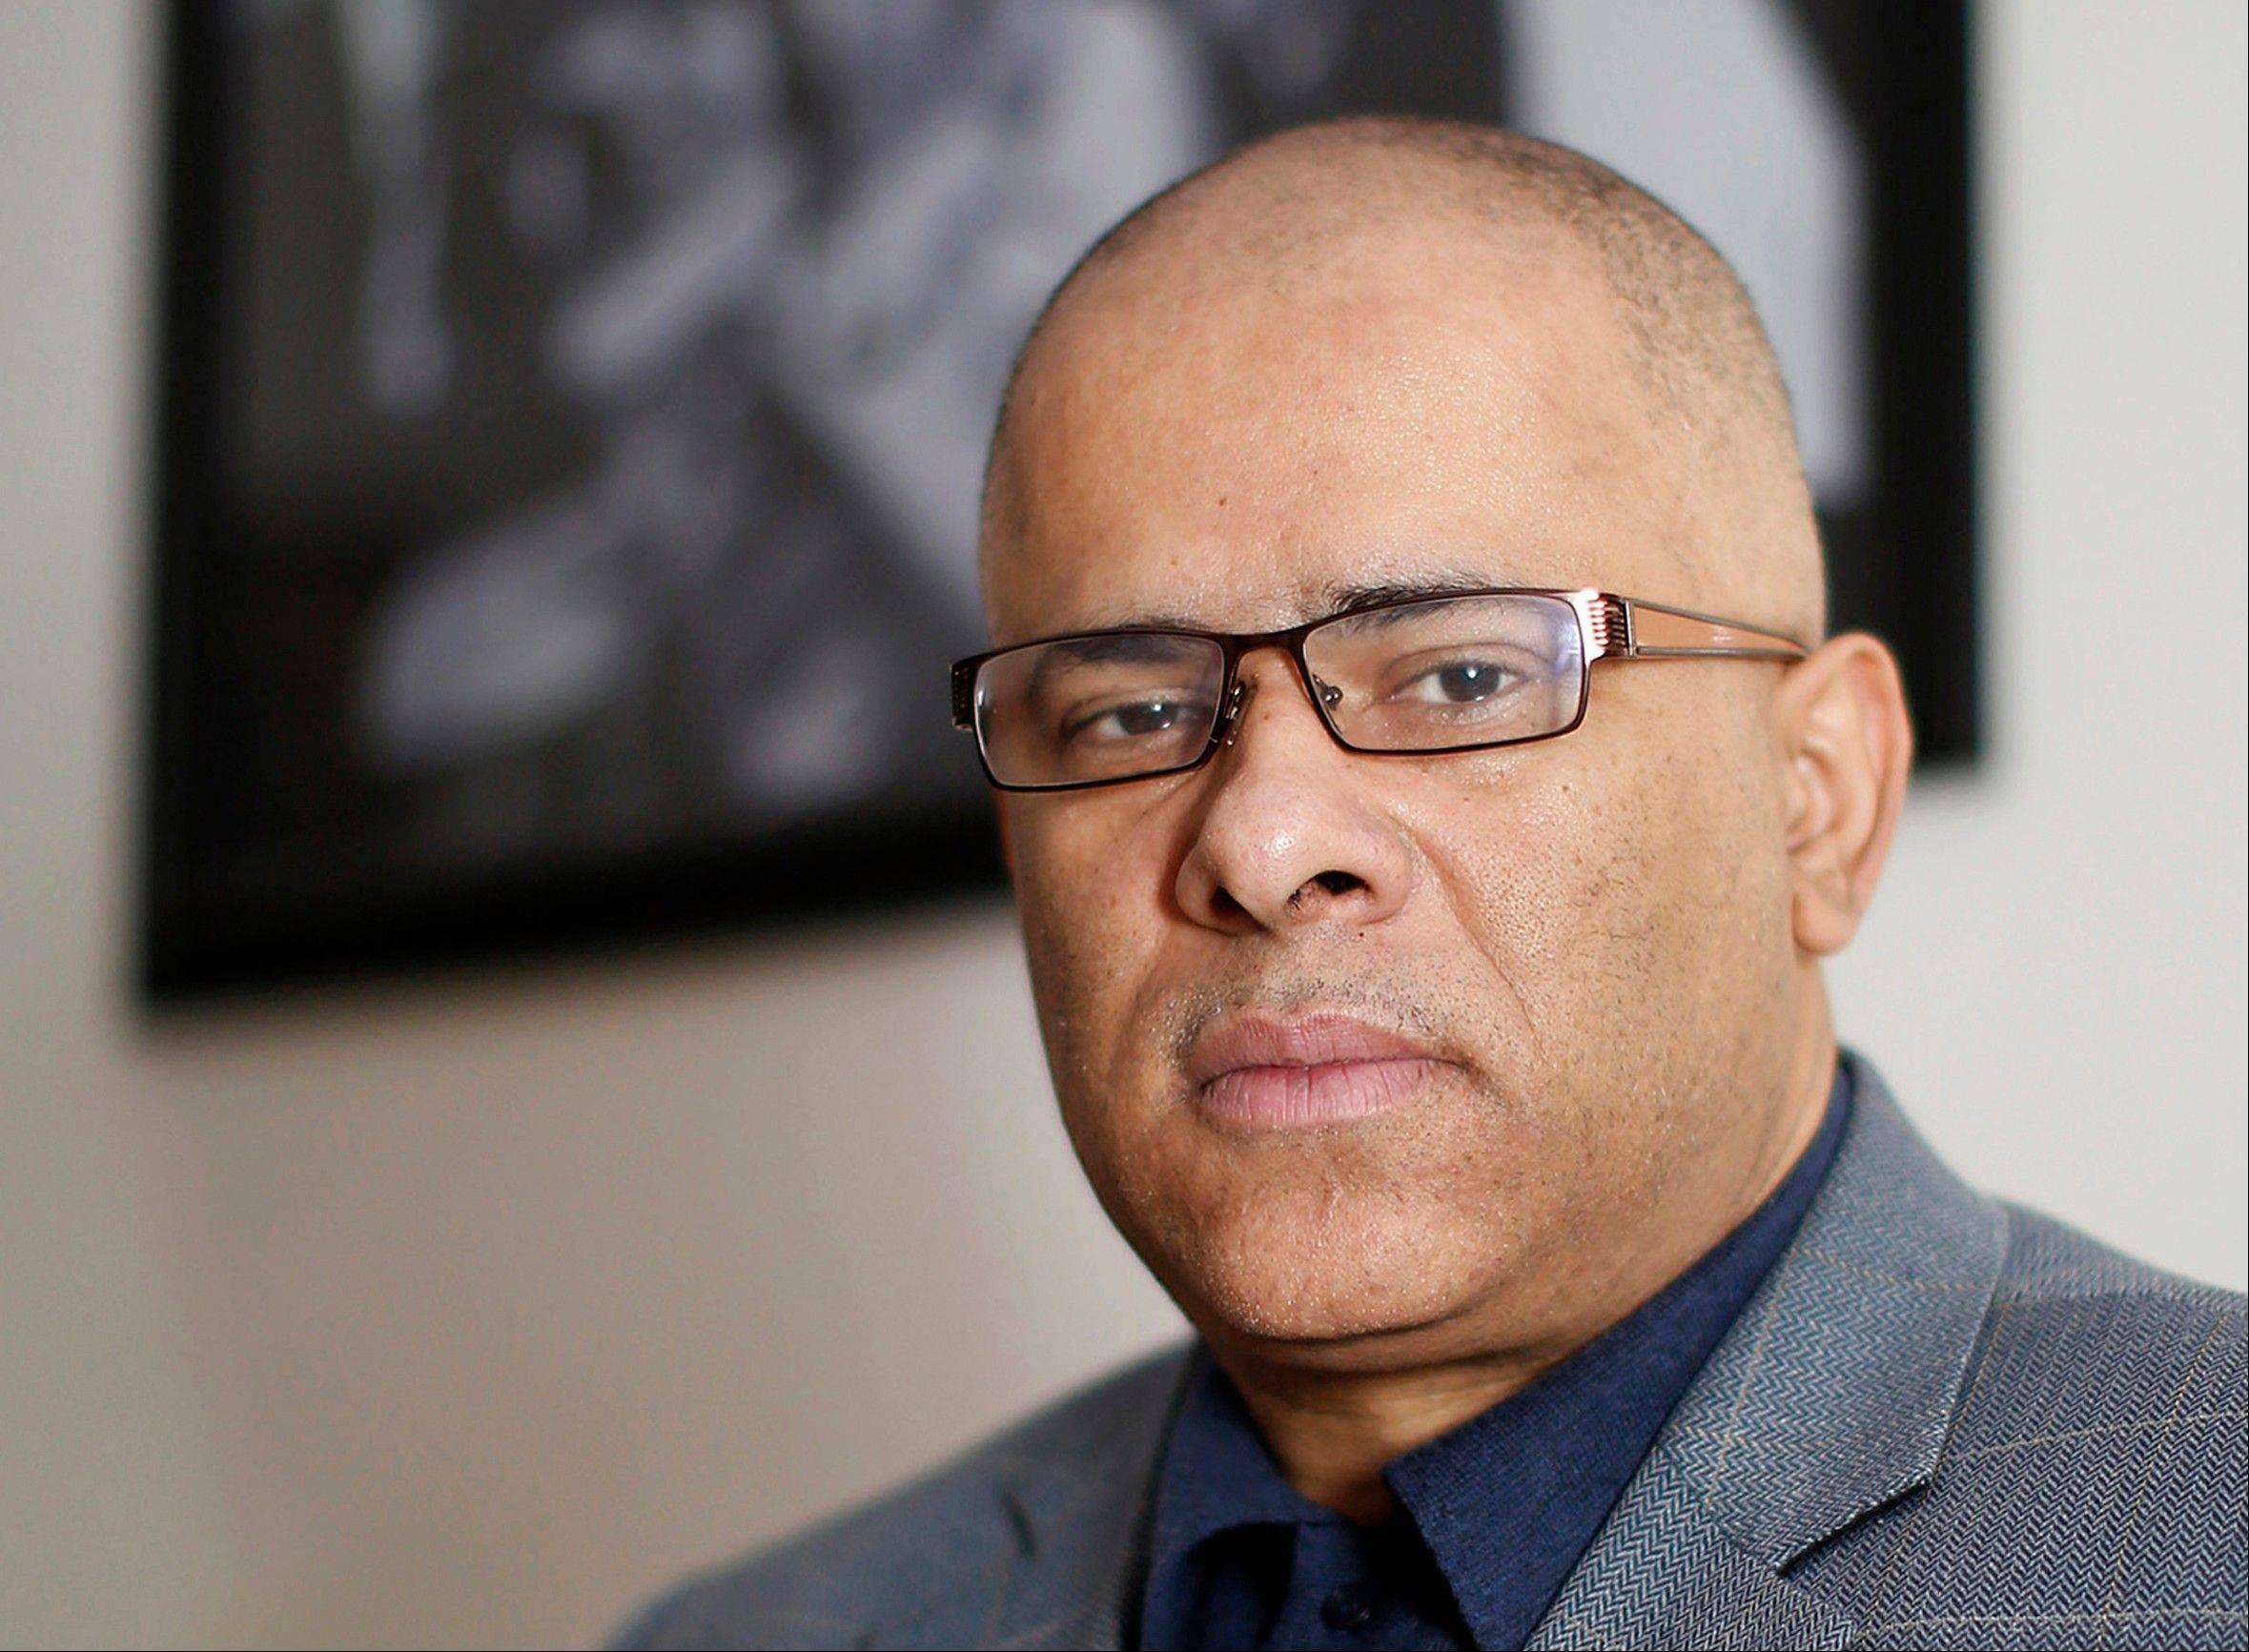 "This April 12 file photo shows Tio Hardiman, then the director of the Chicago anti-violence group CeaseFire, in his office in Chicago. Illinois elections officials are expected to decide next week whether Hardiman can remain on the ballot to challenge Gov. Pat Quinn in the 2014 Democratic primary. The issue is whether lieutenant governor candidate Brunell Donald used her correct address on petitions. The Chicago woman says she'd recently moved, but didn't change the address on her voter registration. Hardiman said Thursday he's ""ready to tackle all of the issues."""